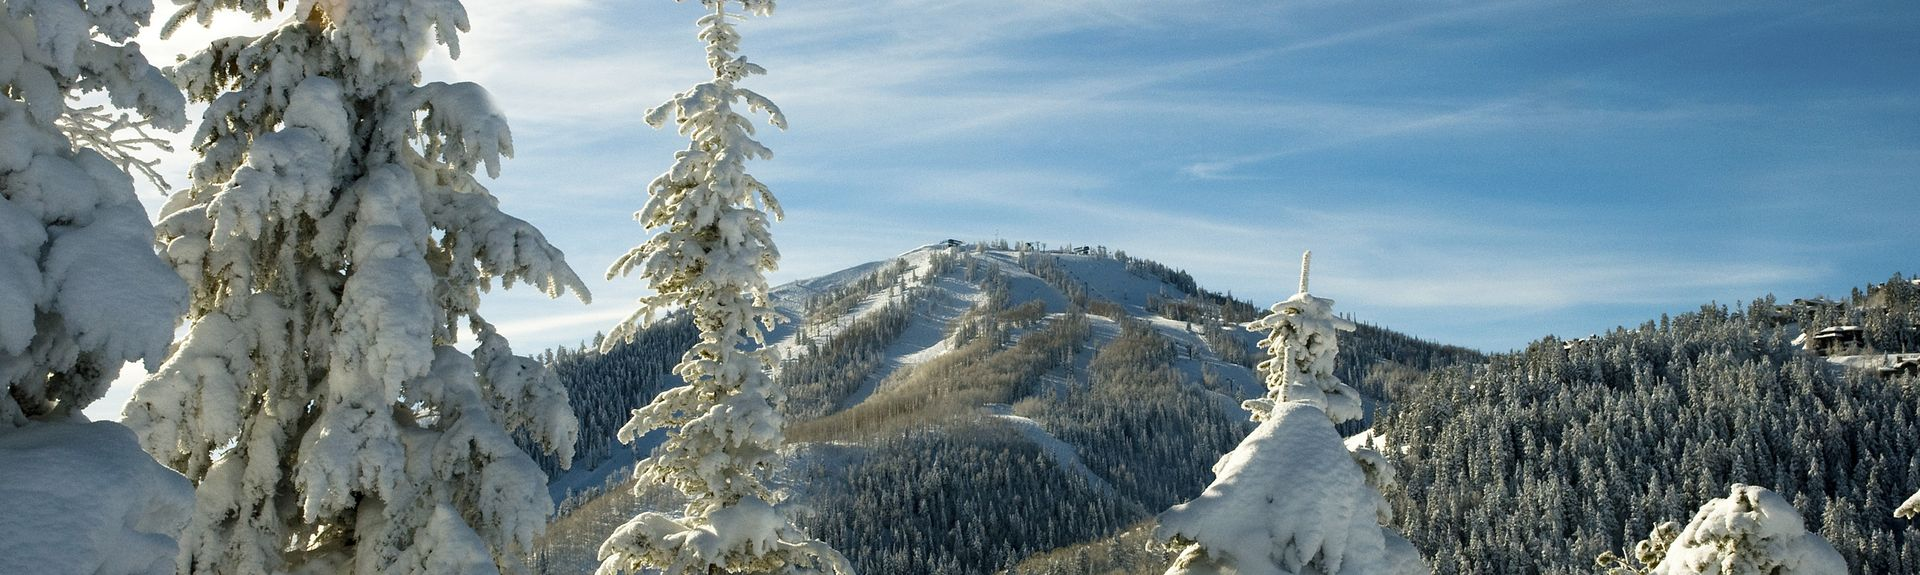 Deer Valley, Park City, Utah, États-Unis